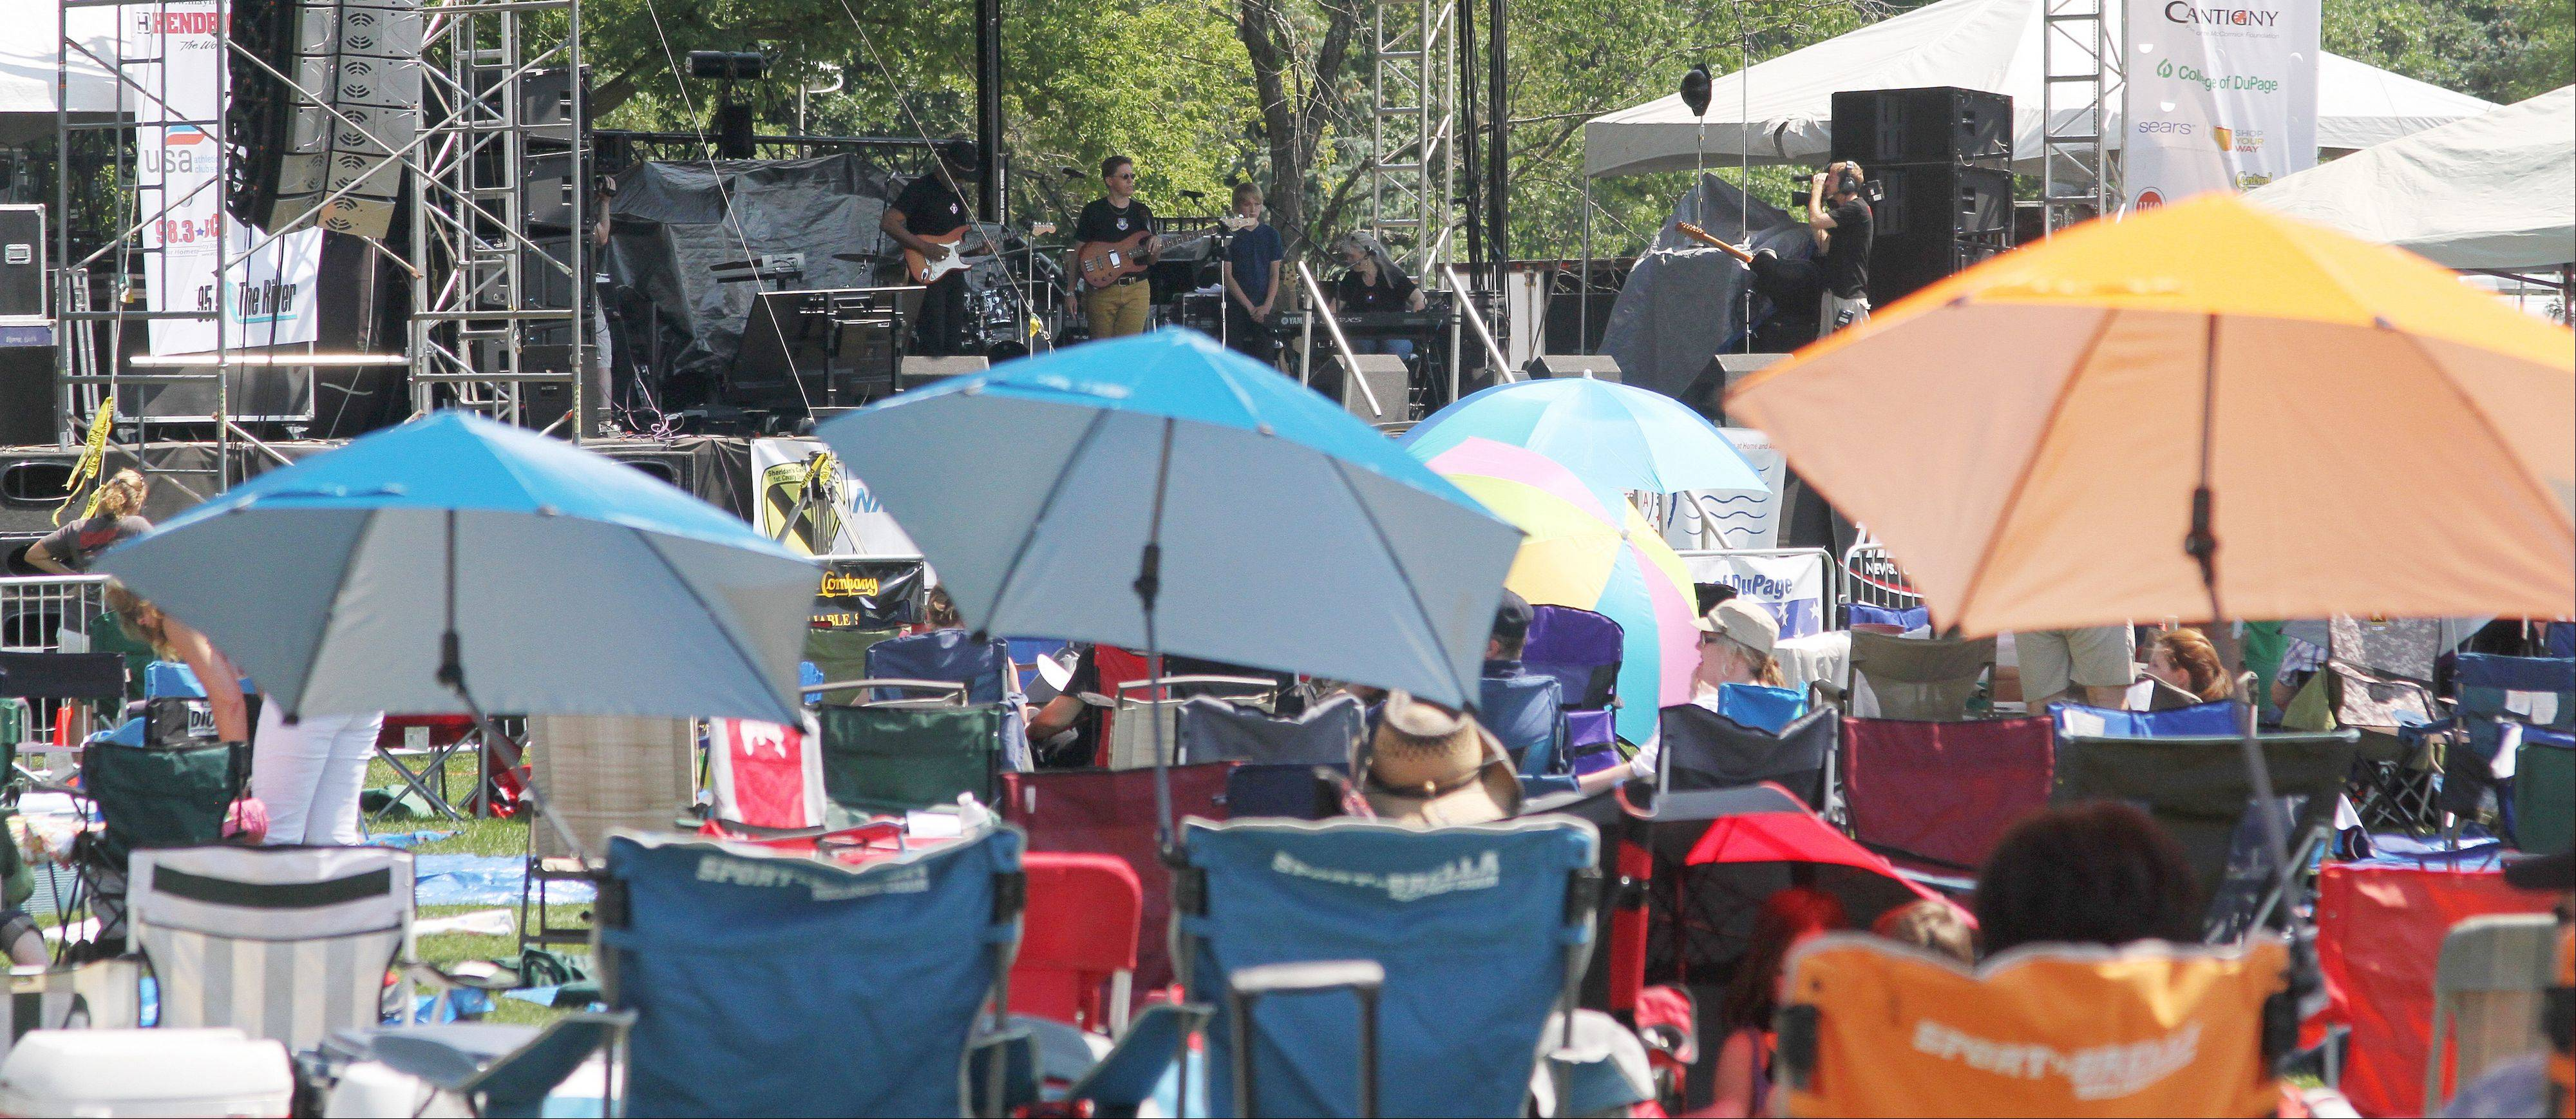 People set up lawn chairs and umbrellas on Saturday at Cantigny Park in Wheaton for the annual Rockin' for the Troops concert.